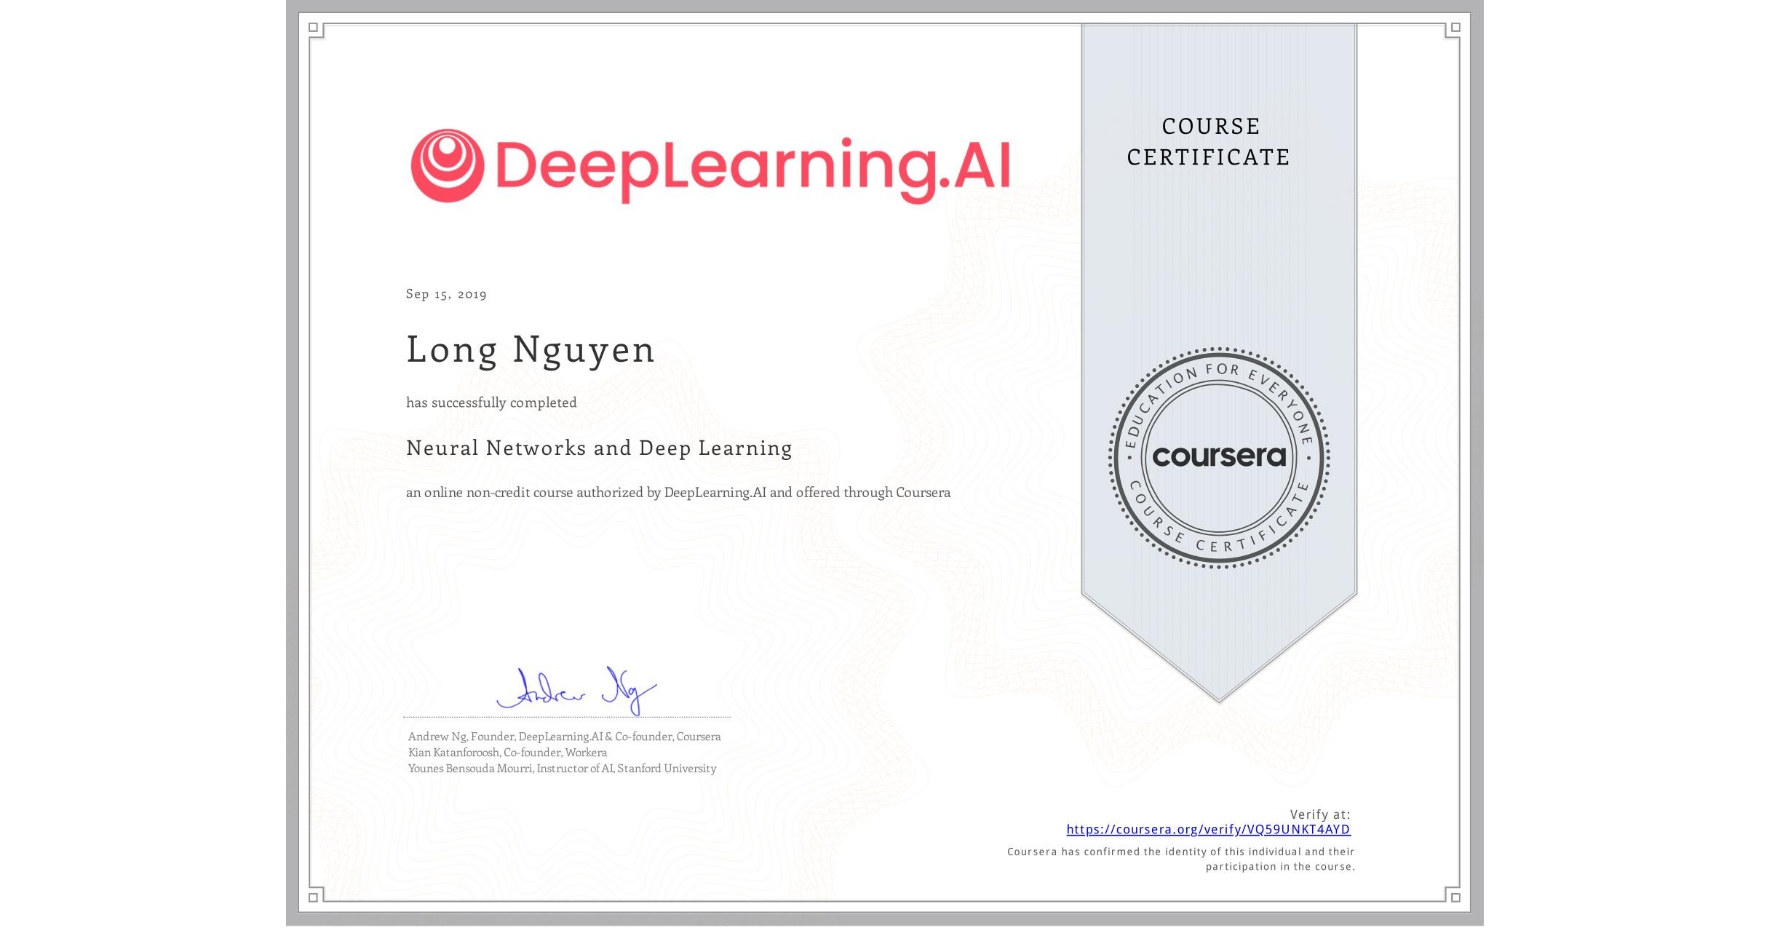 View certificate for Long Nguyen, Neural Networks and Deep Learning, an online non-credit course authorized by DeepLearning.AI and offered through Coursera